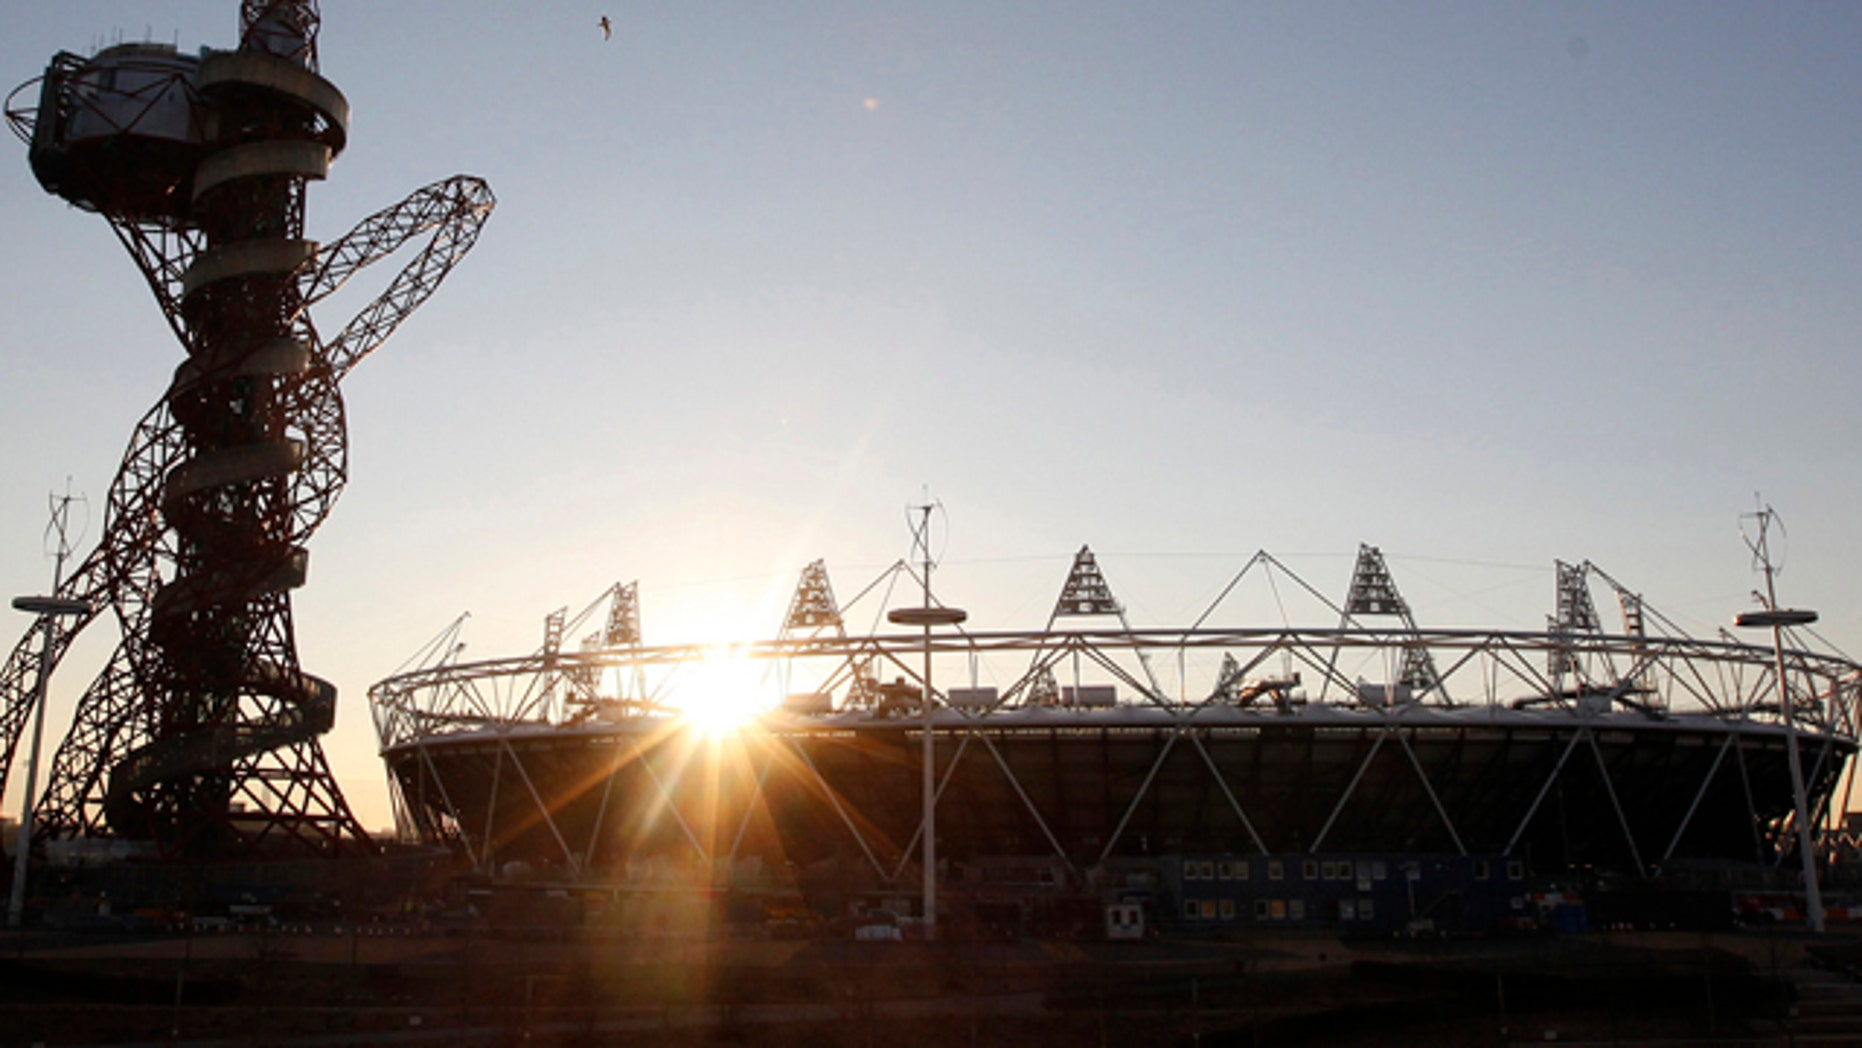 Feb. 23, 2012: In this file photo the London 2012 Olympic Stadium is seen at about sunset, with the partially completed ArcelorMittal Orbit at the Olympic Park in London.